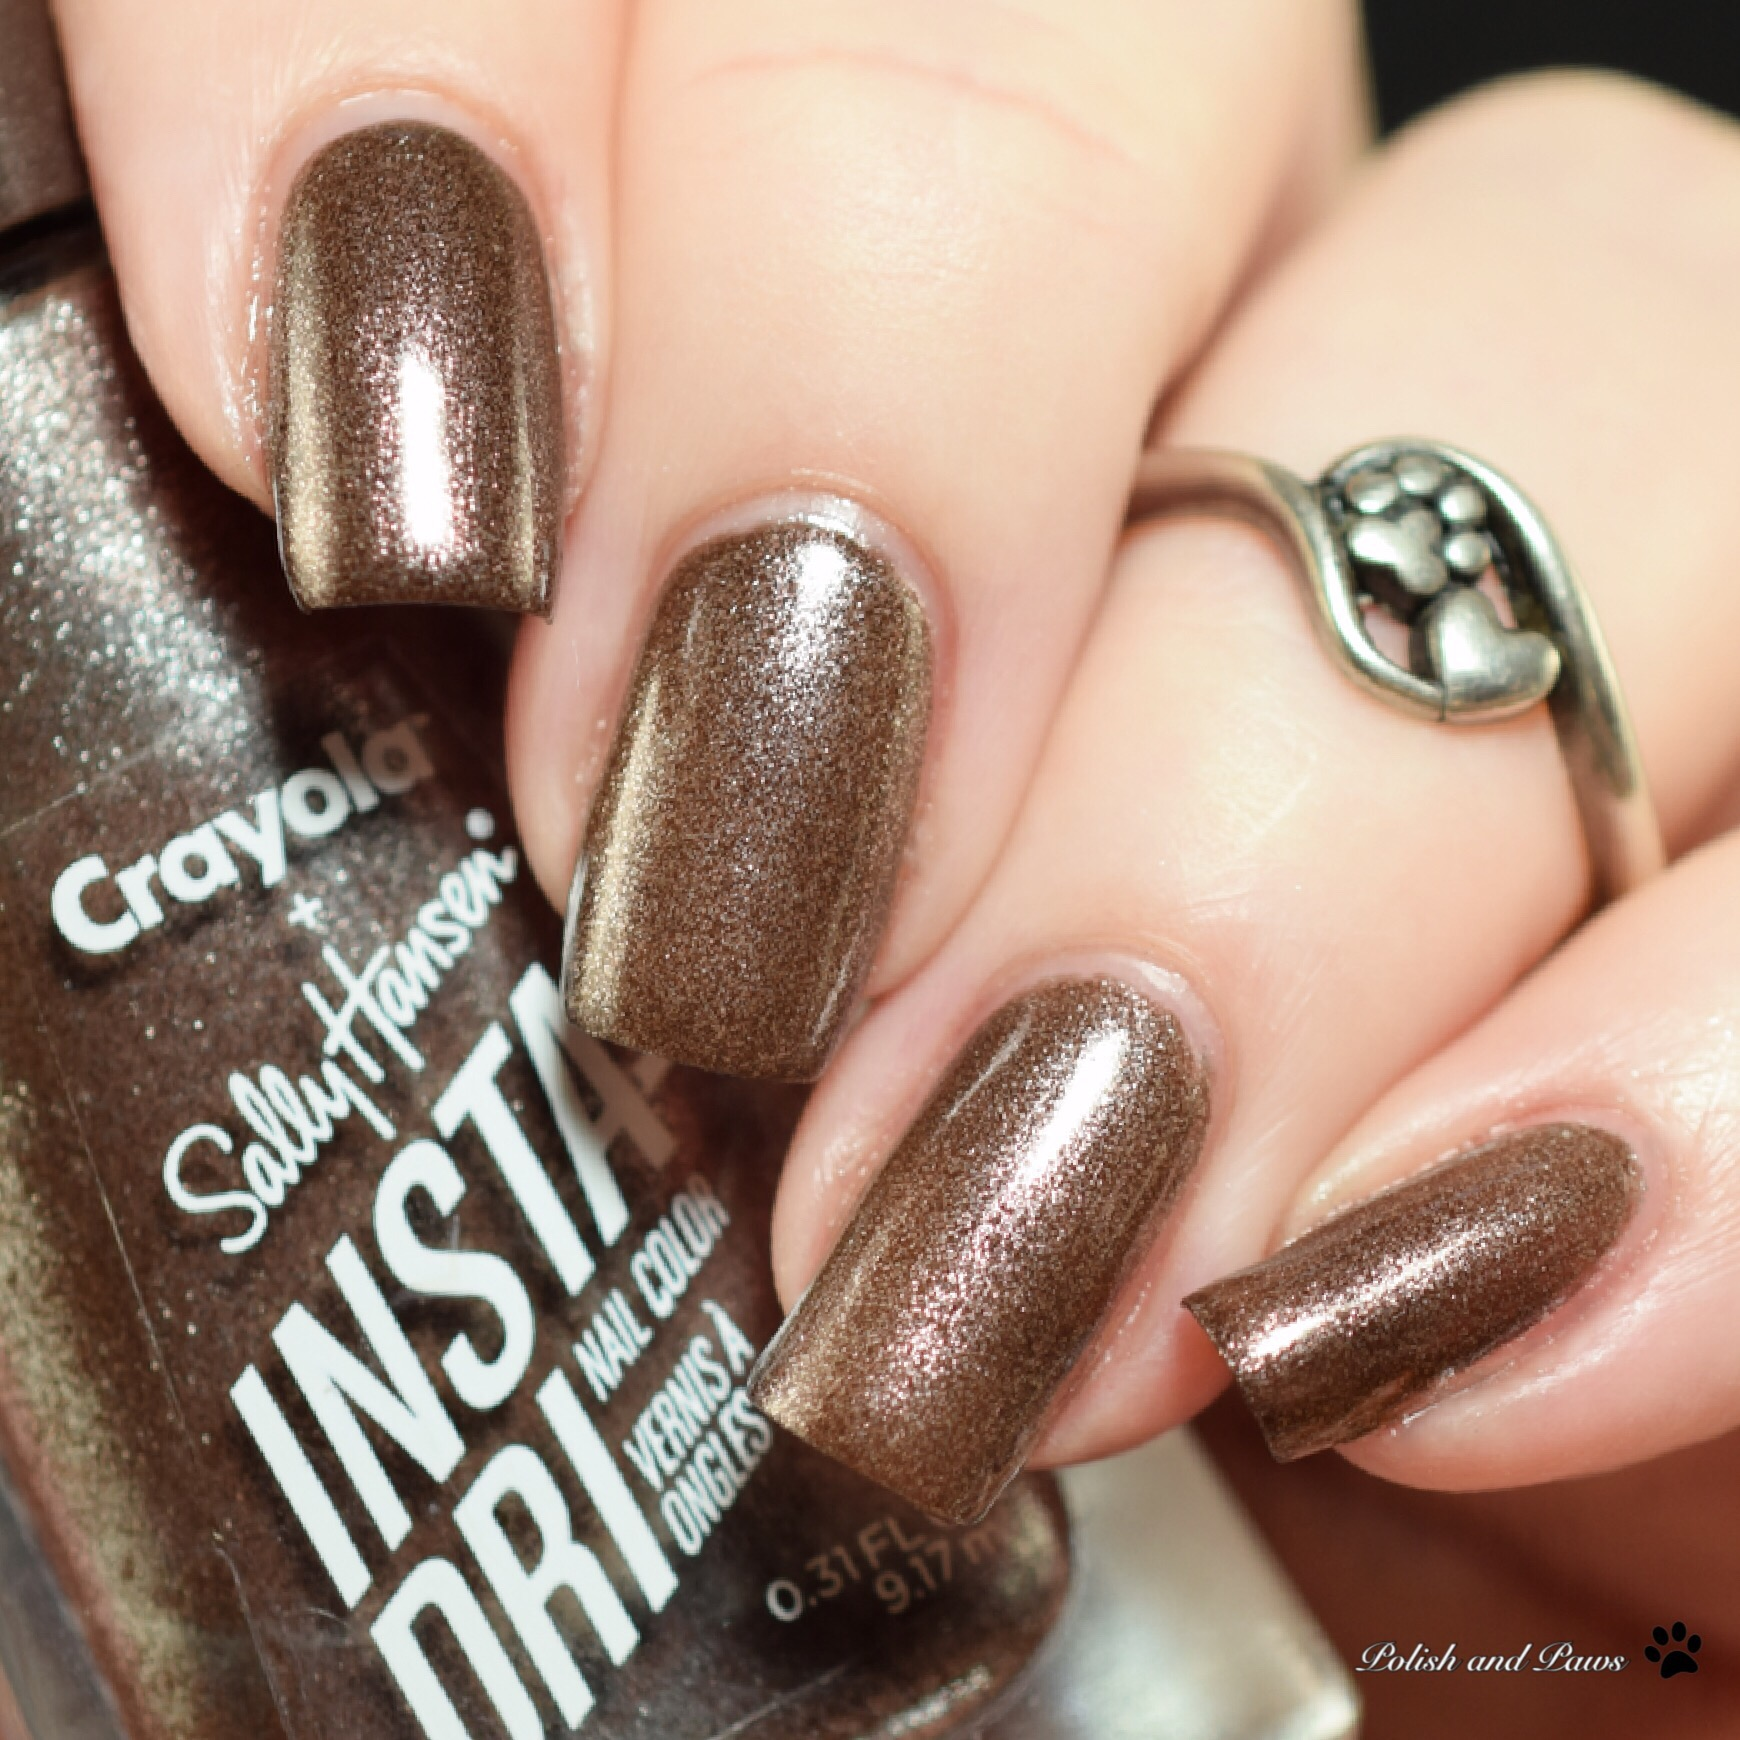 Sally Hansen Crayola Blast Off Bronze